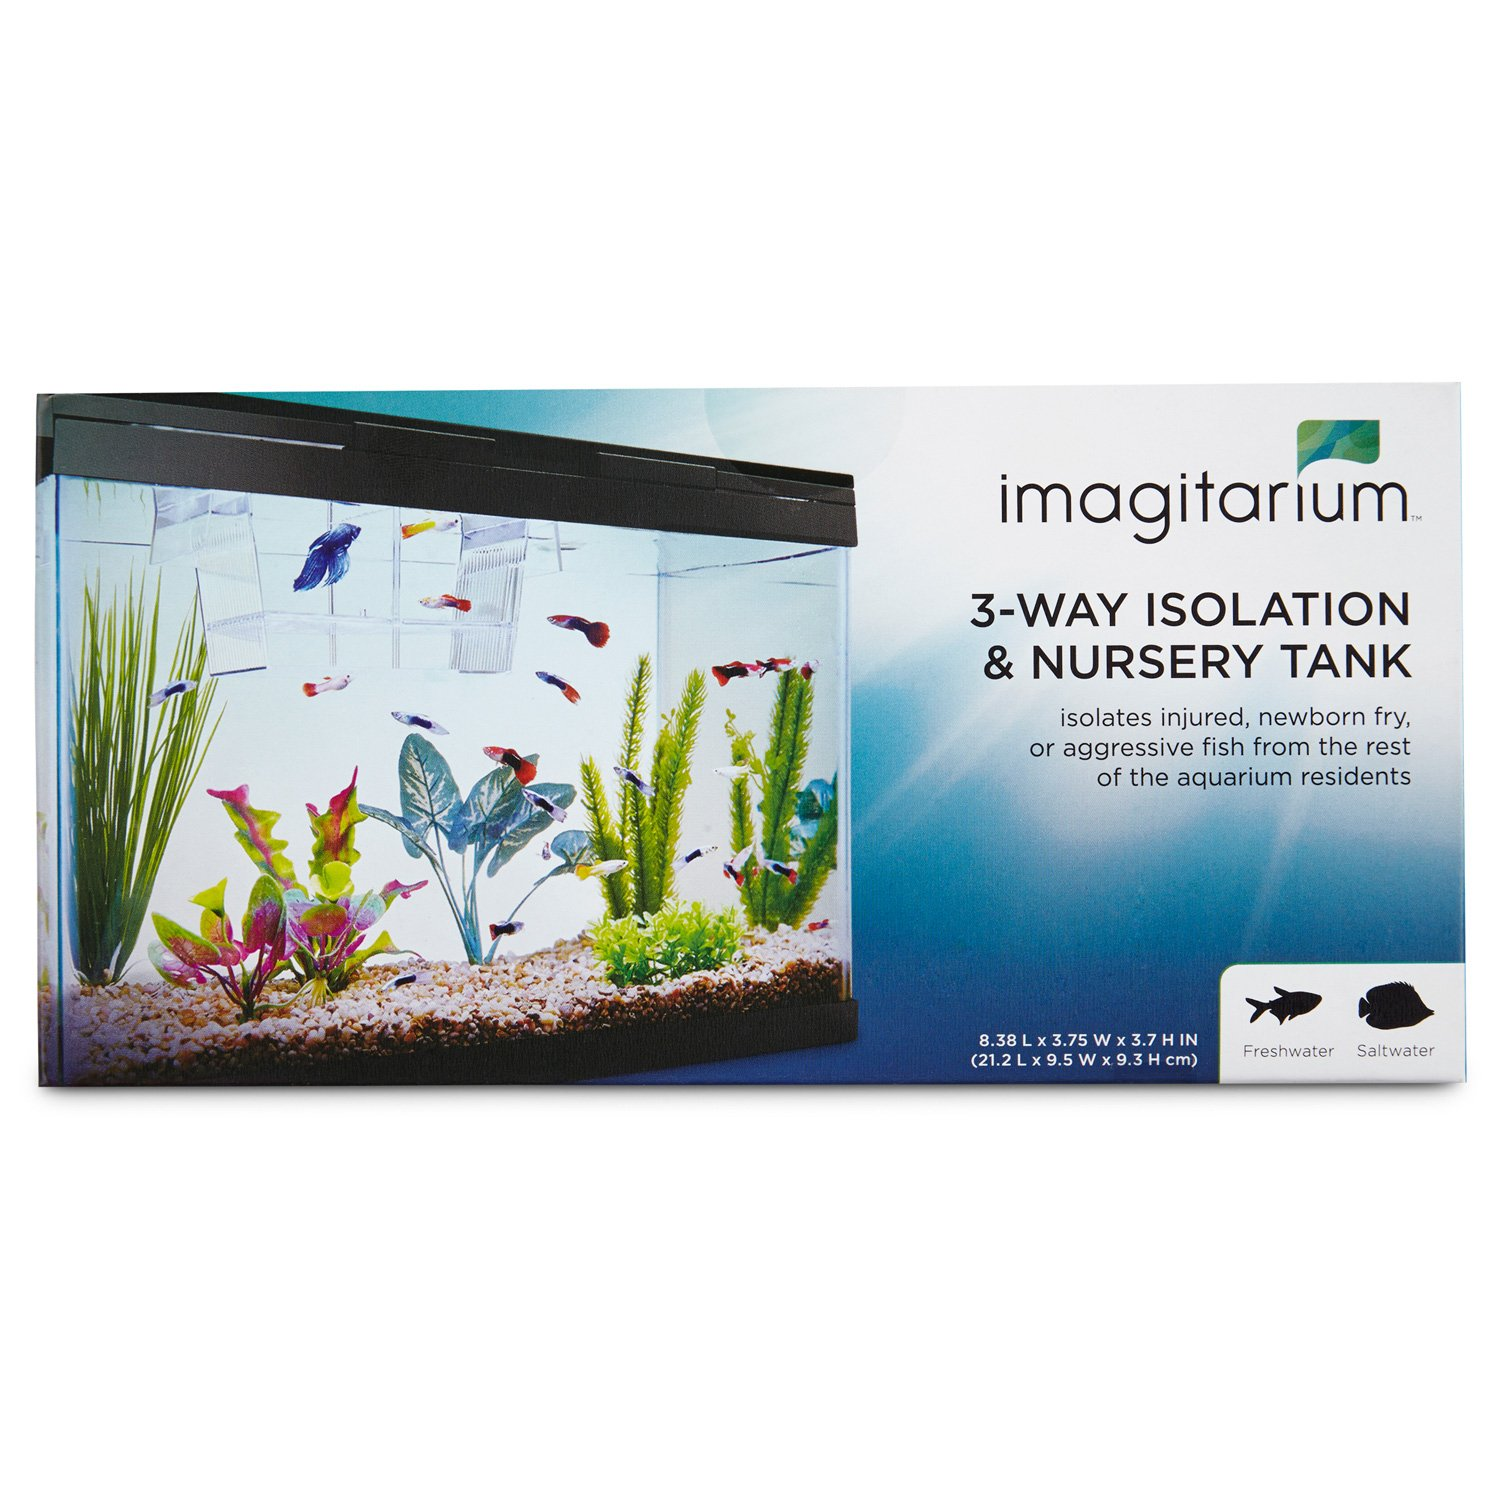 Imagitarium Isolation Amp Breeder Fish Tank Petco